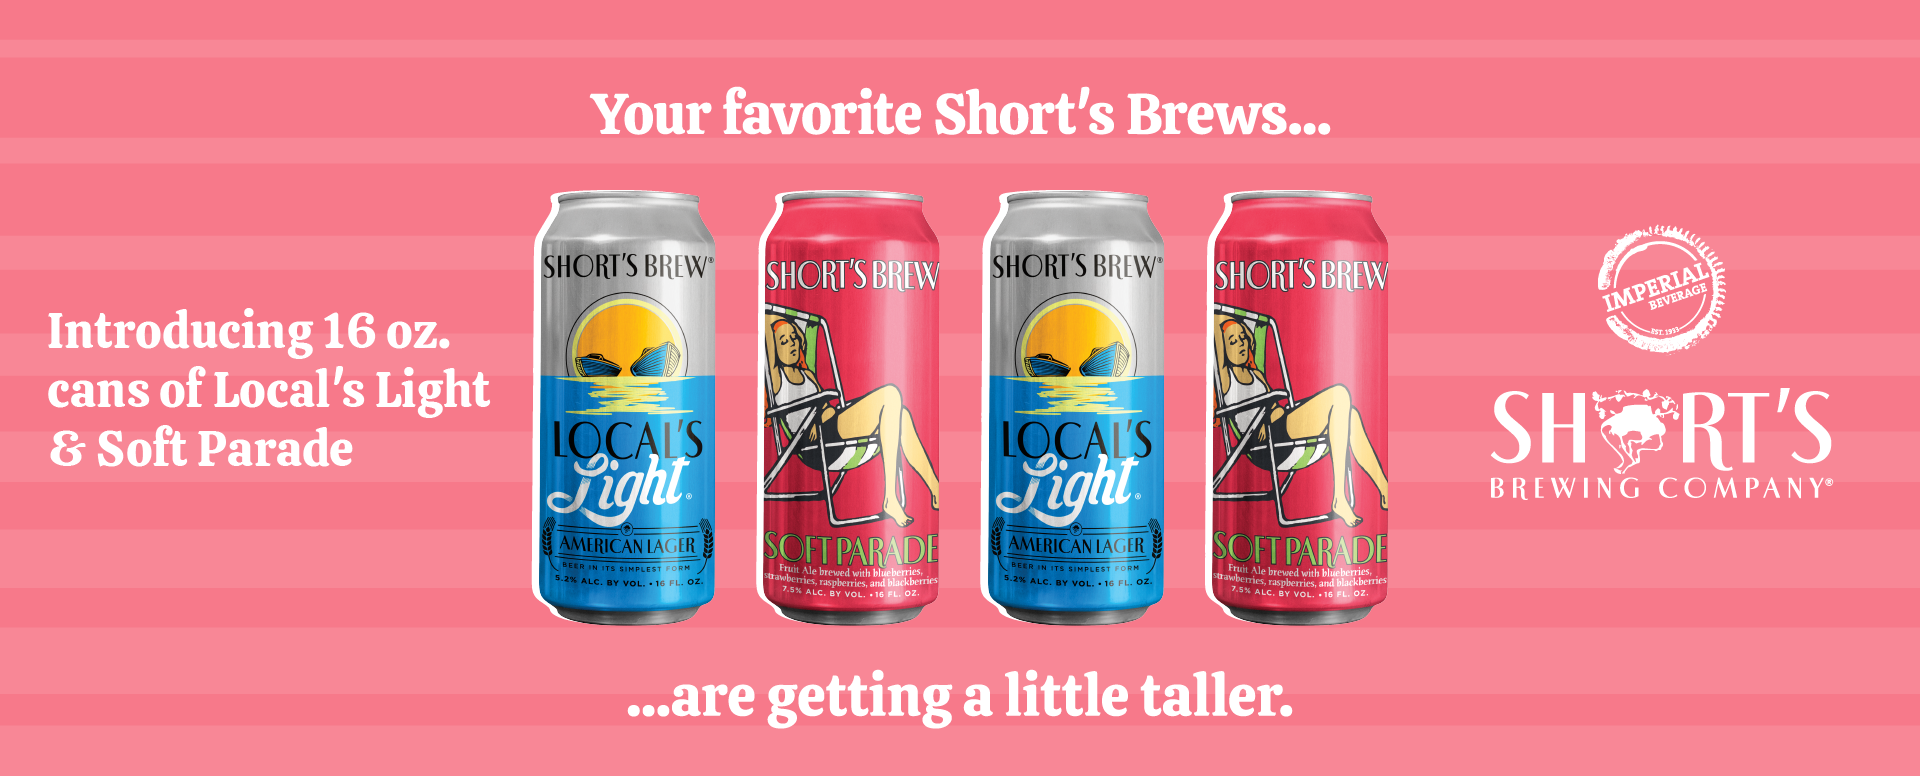 Imperial Beverage Short's Brewing